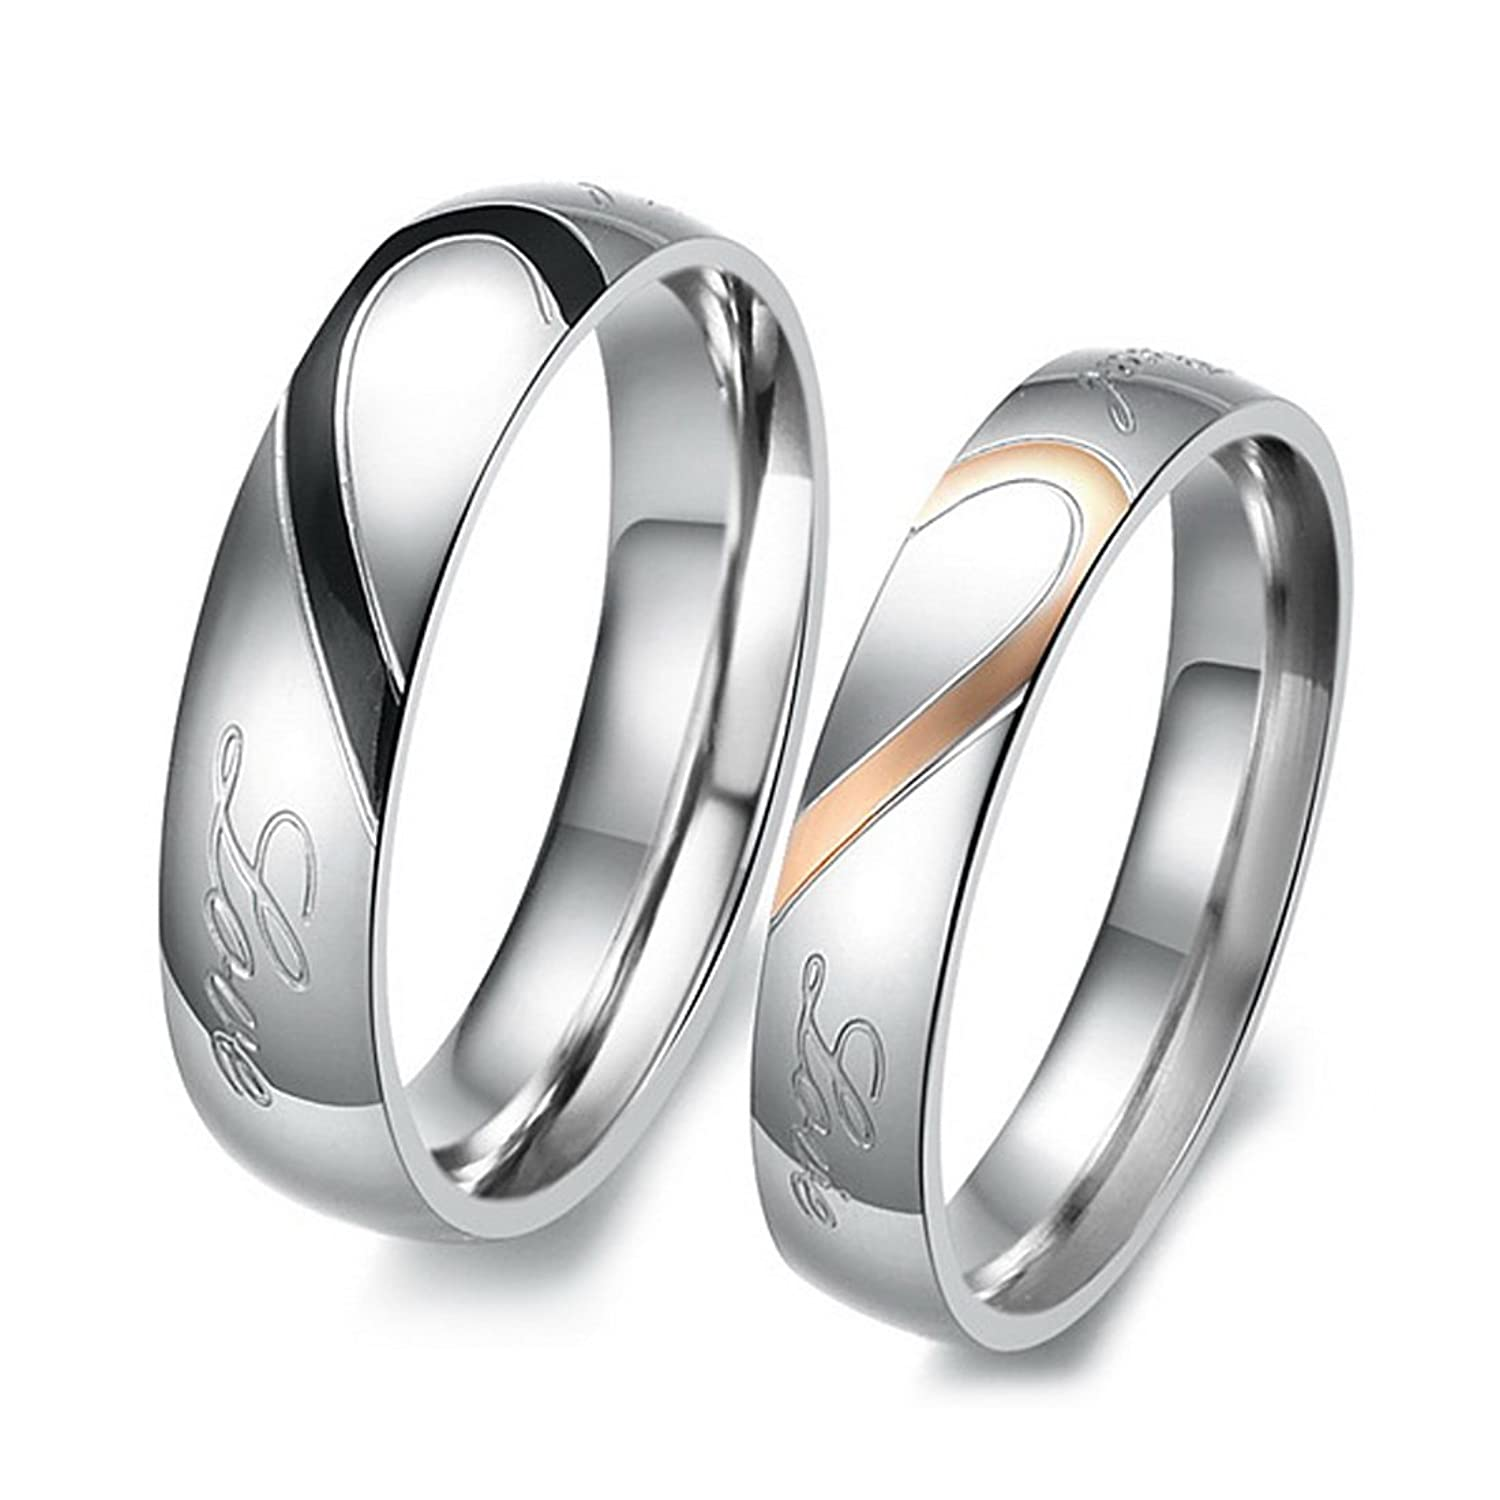 the down set bands band metalsmith product love artizan to made wire wedding designs